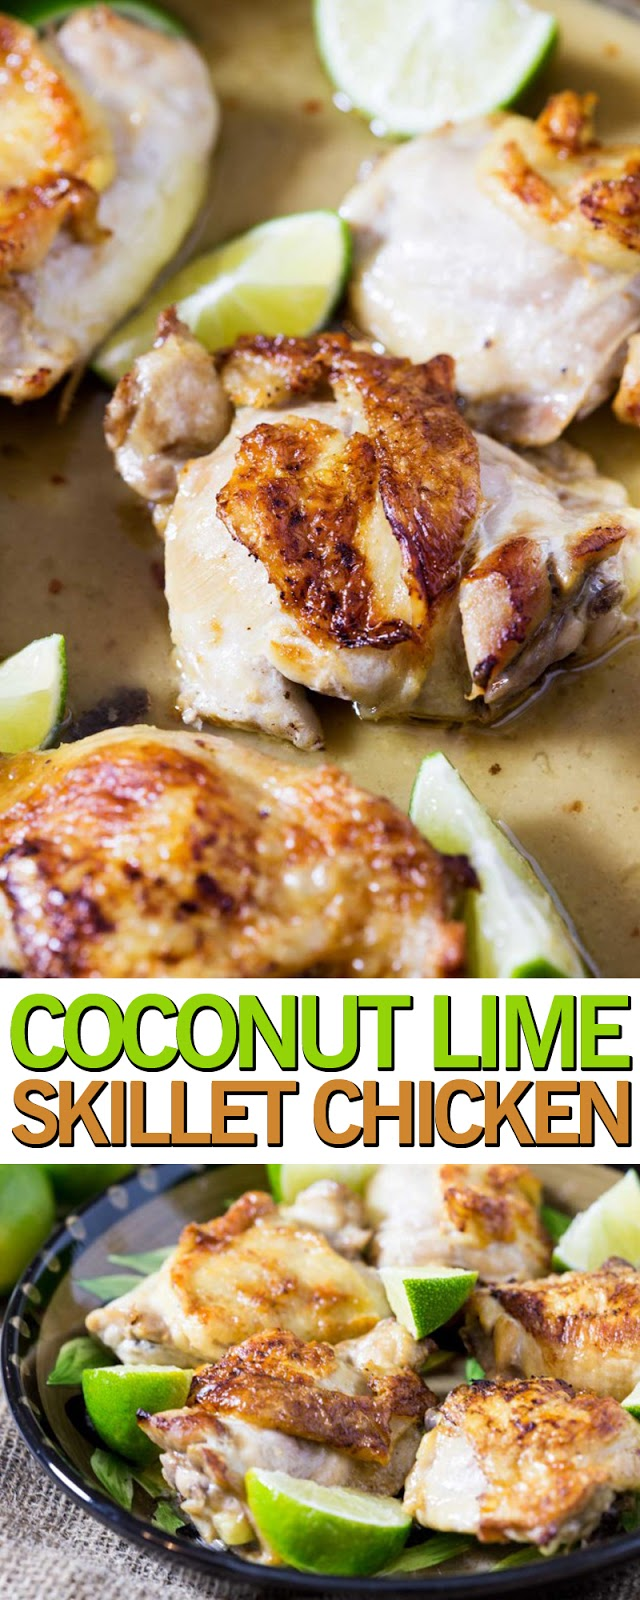 COCONUT LIME SKILLET CHICKEN